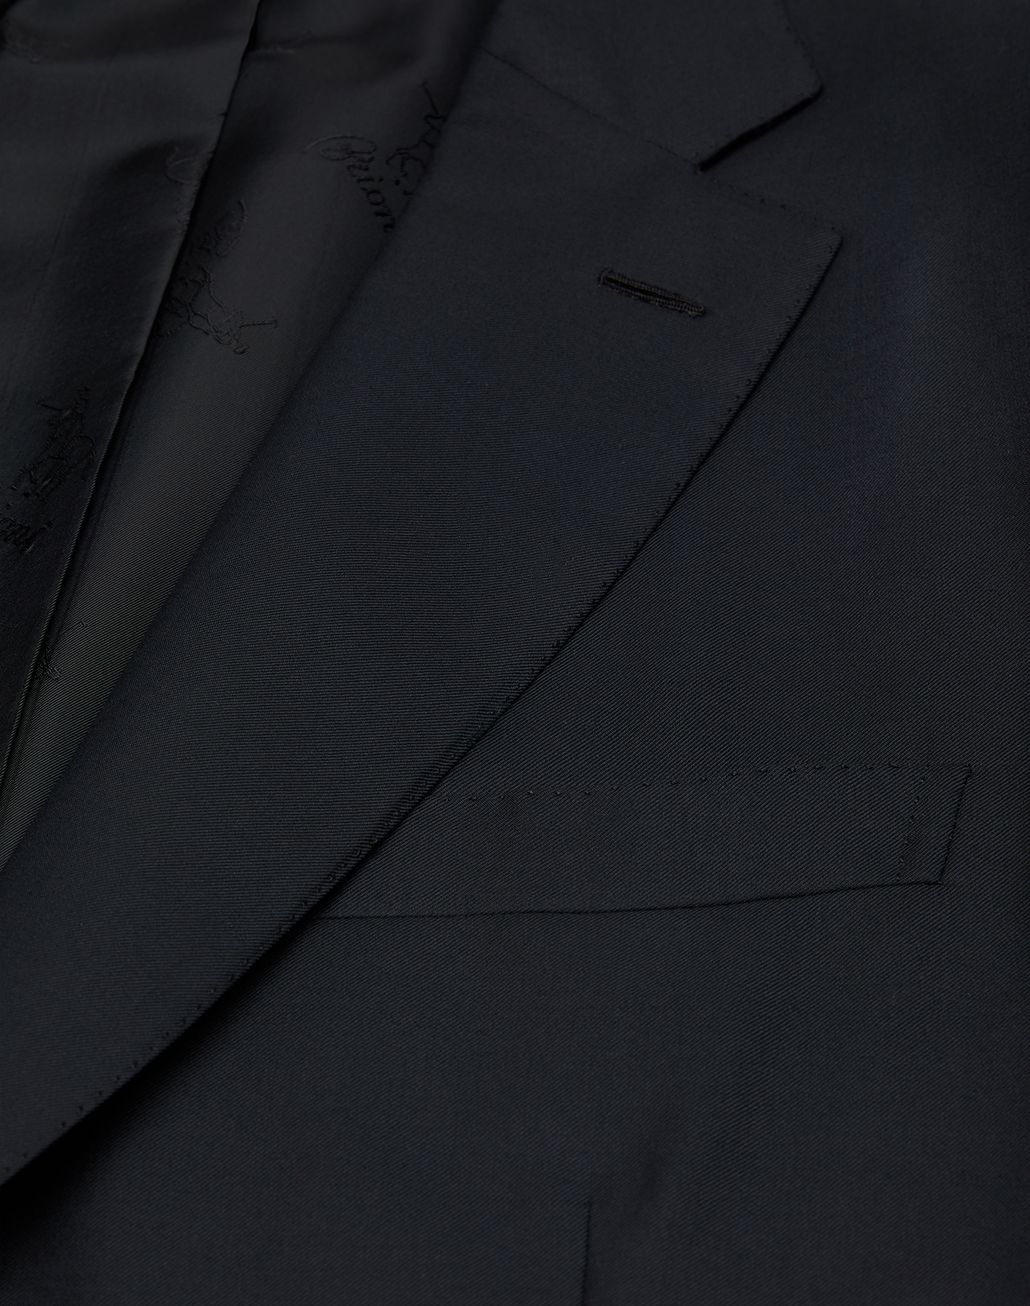 BRIONI Black Brunico Suit Suits & Jackets U a